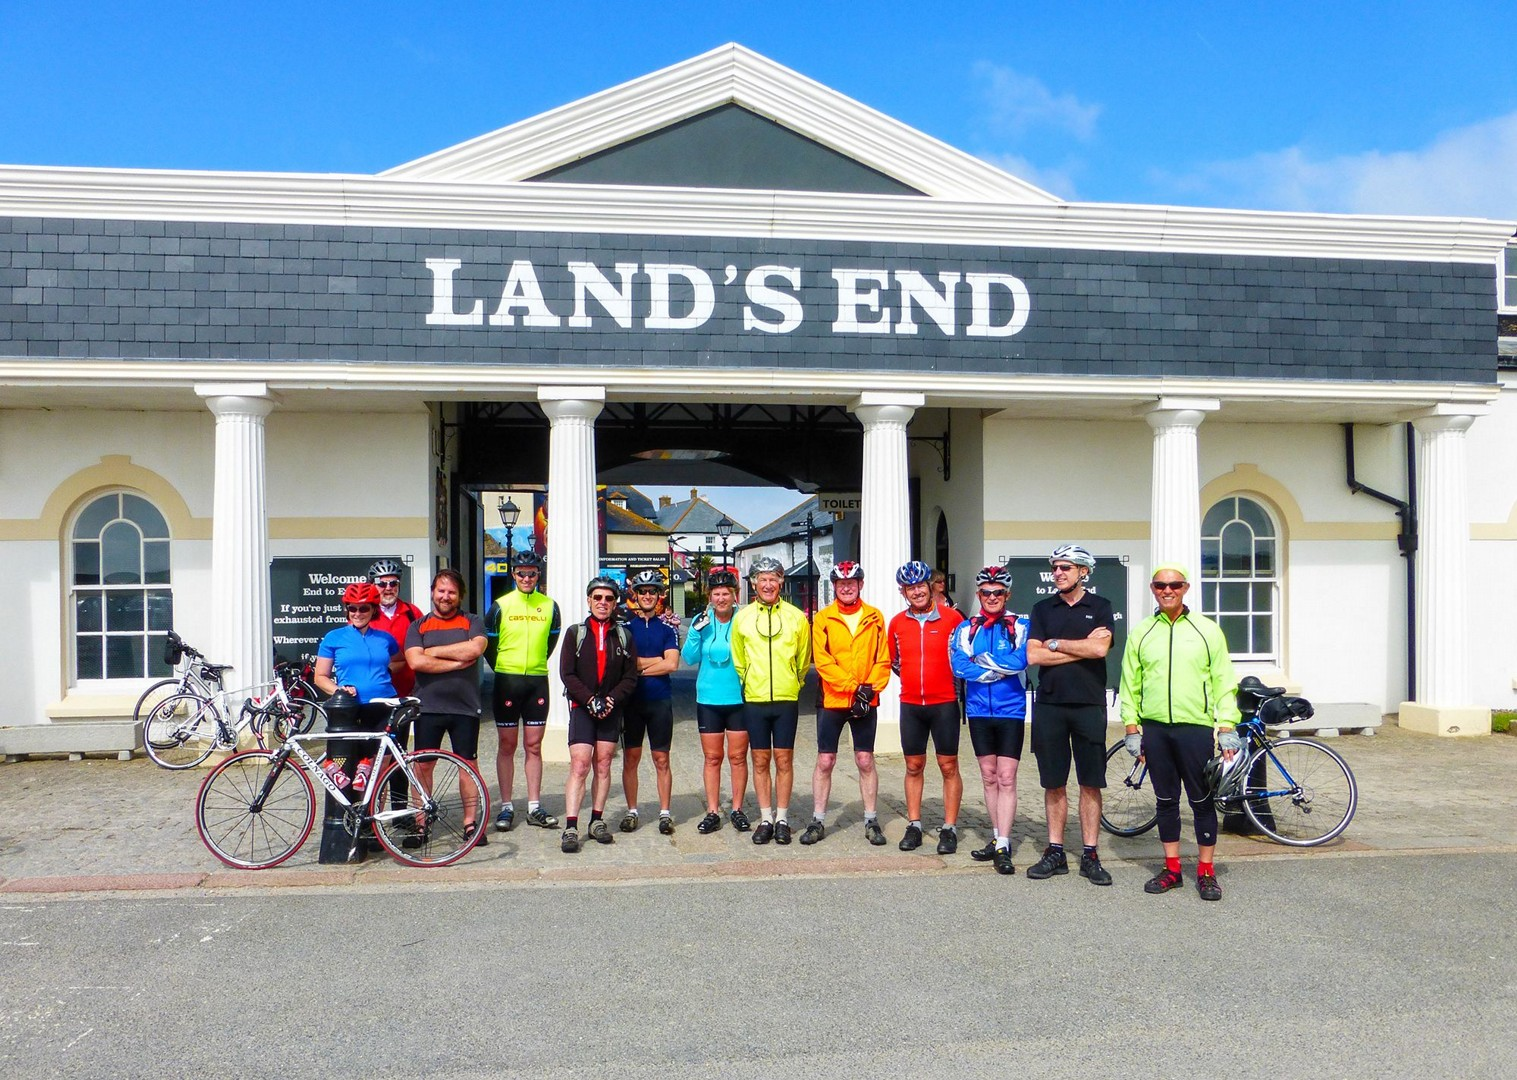 22-day-guided-cycling-holiday-in-the-uk-lejog-route-saddle-skedaddle.jpg - UK - Land's End to John O'Groats Explorer (22 days) - Guided Cycling Holiday - Leisure Cycling